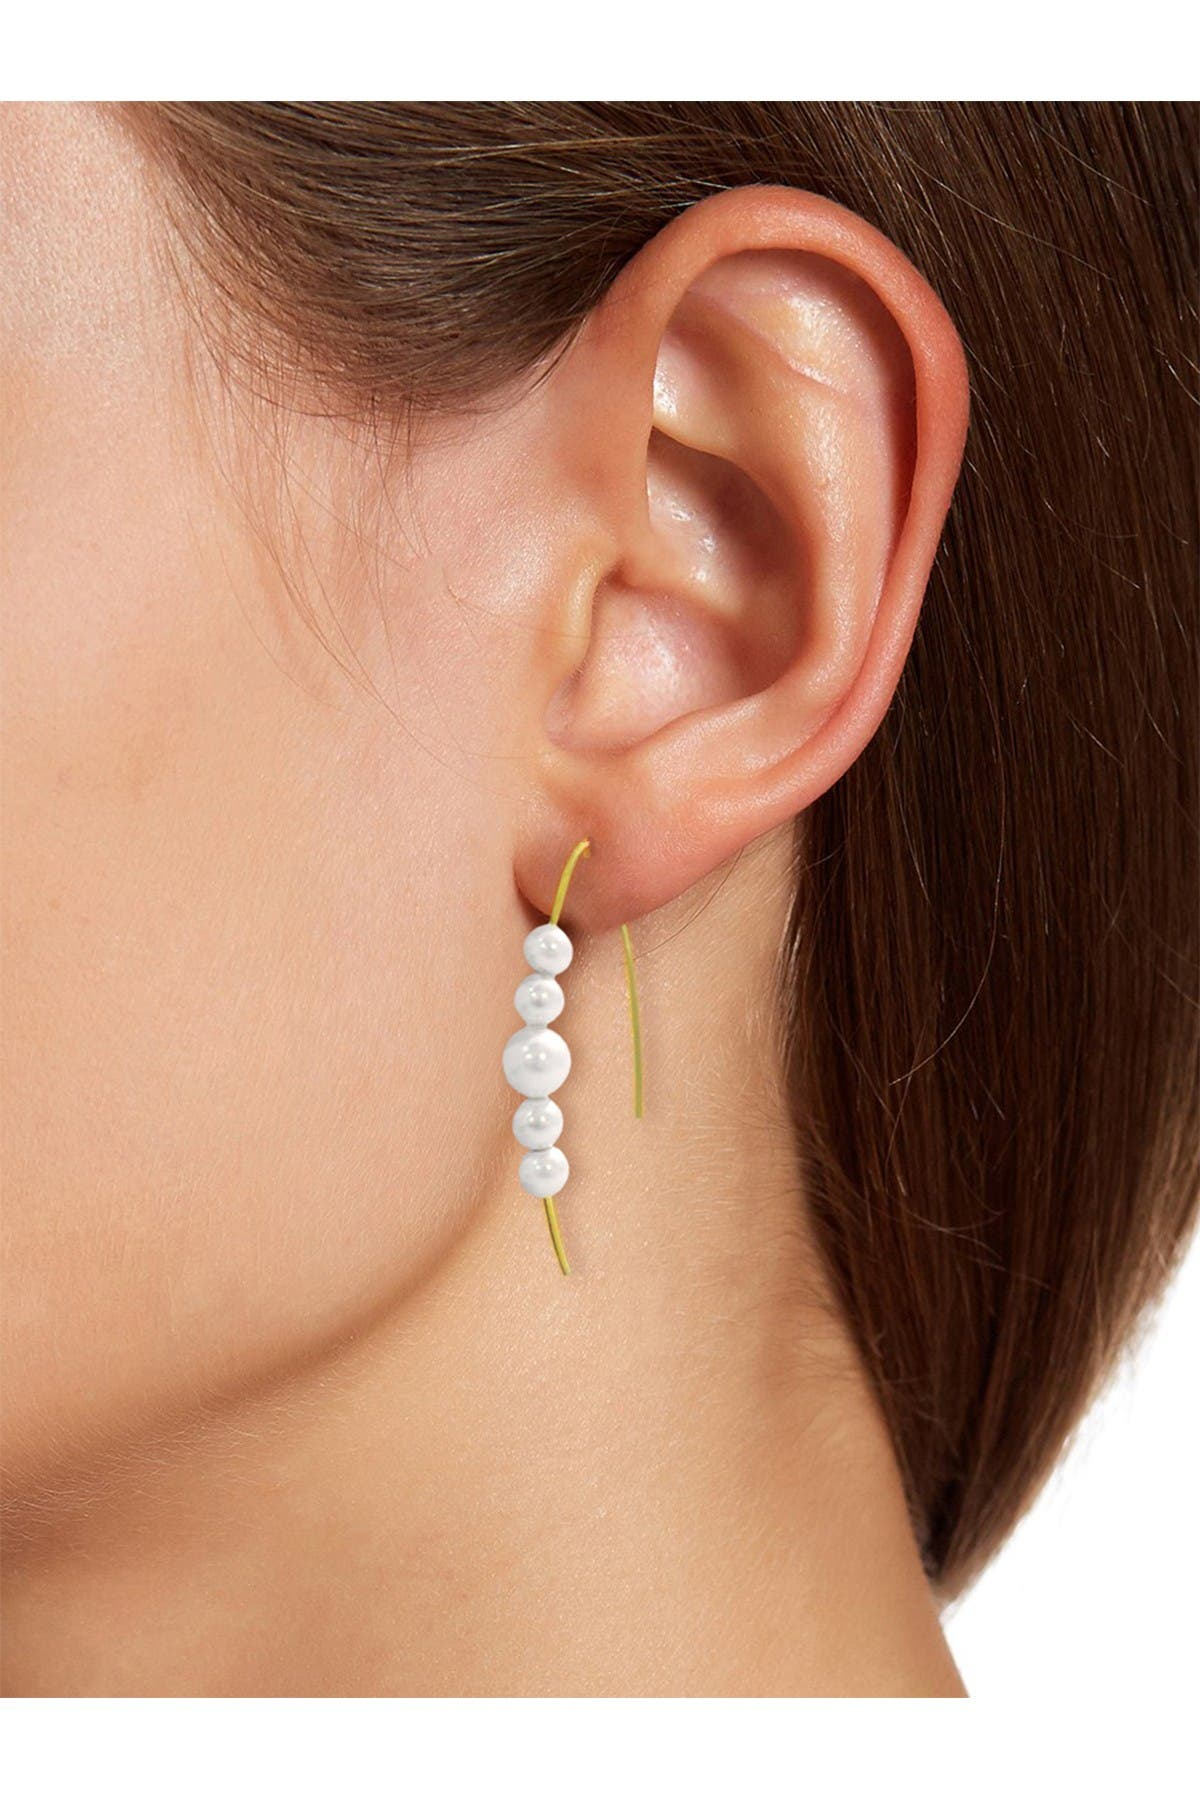 Image of Savvy Cie 14K Gold Graduated Swarovski Faux 6-8mm Pearl Earrings